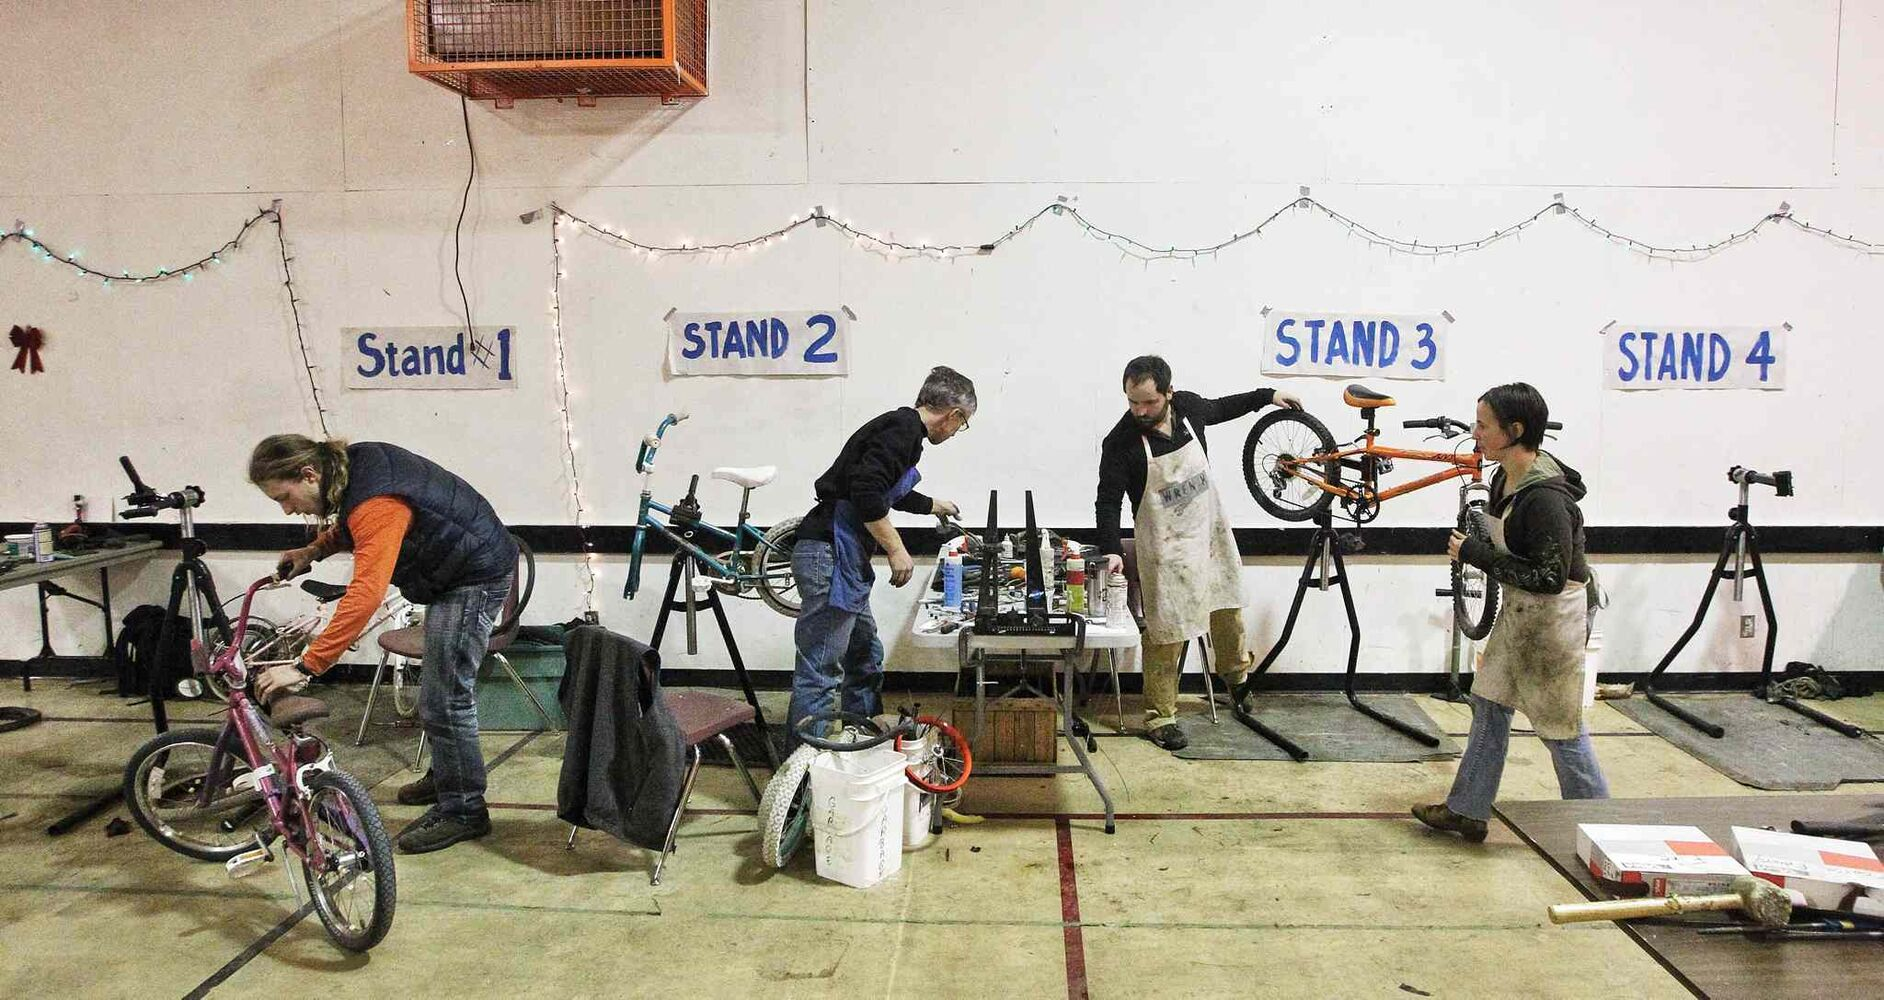 Volunteers get together at the Orioles Community Centre for a 24-hour bike repair marathon. Over 250 bicycles were repaired for children whose families can't afford to buy one for Christmas. (MIKE DEAL / WINNIPEG FREE PRESS)